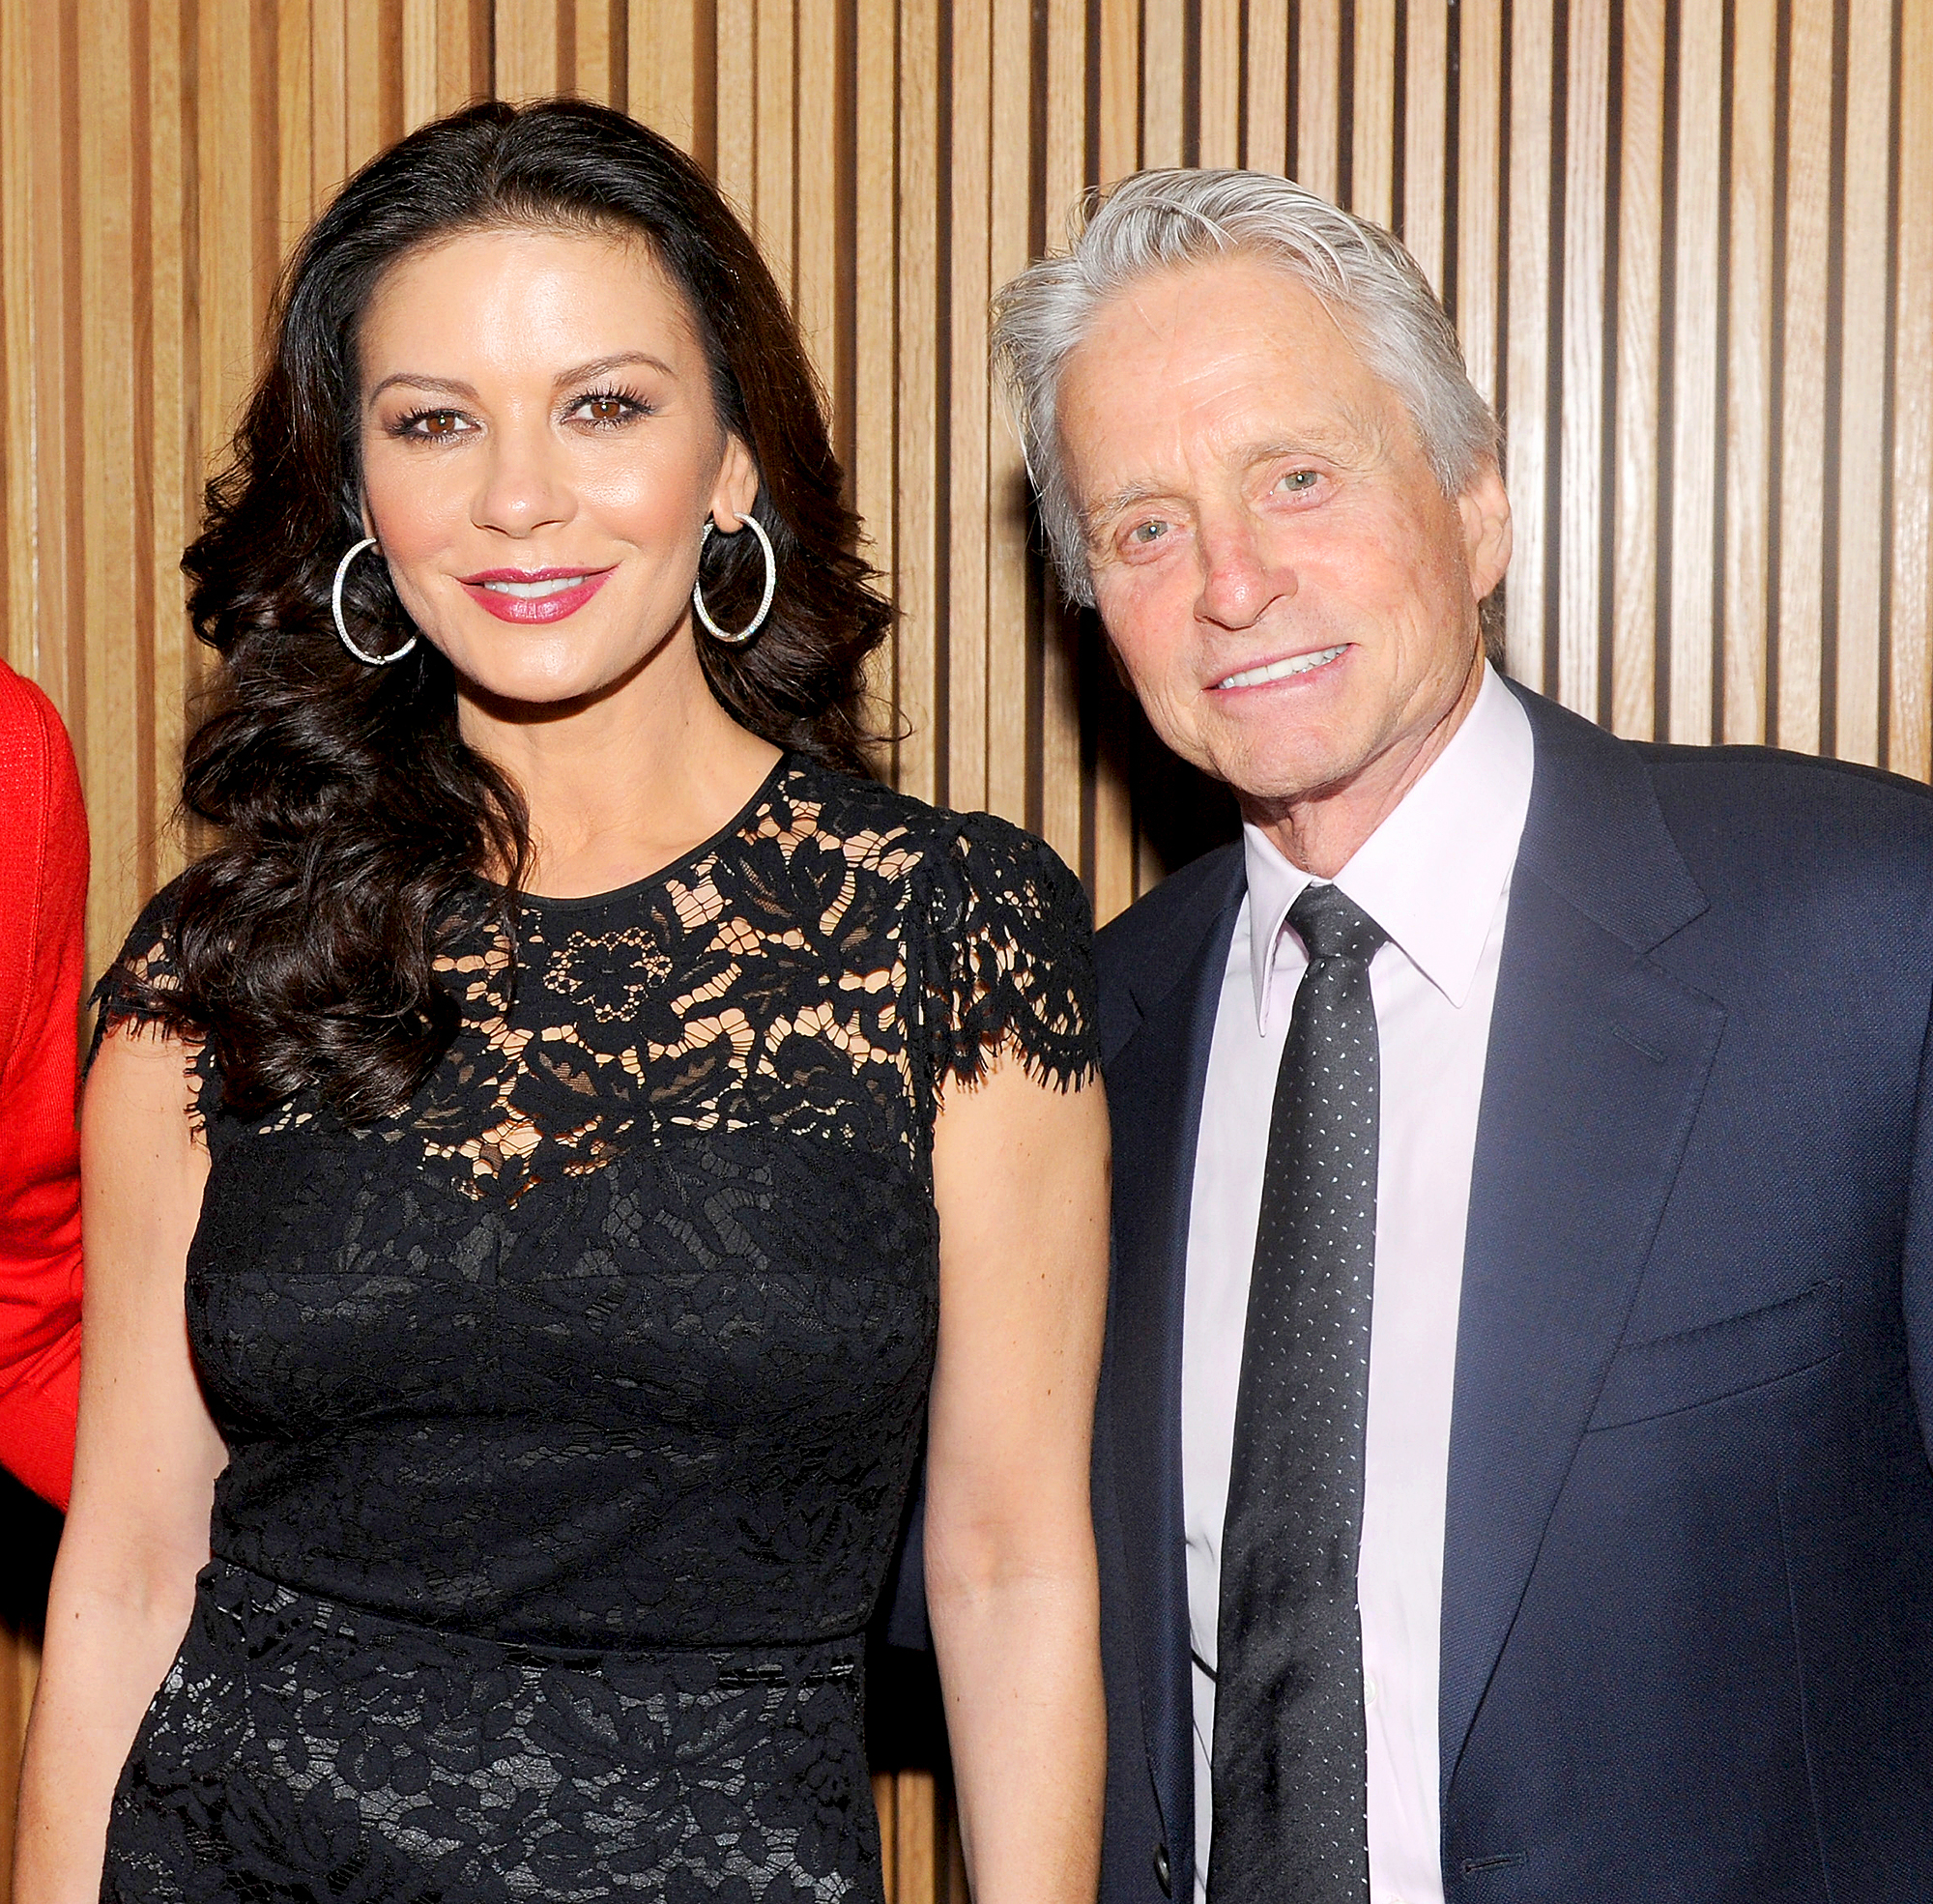 Image result for catherine zeta-jones and michael douglas